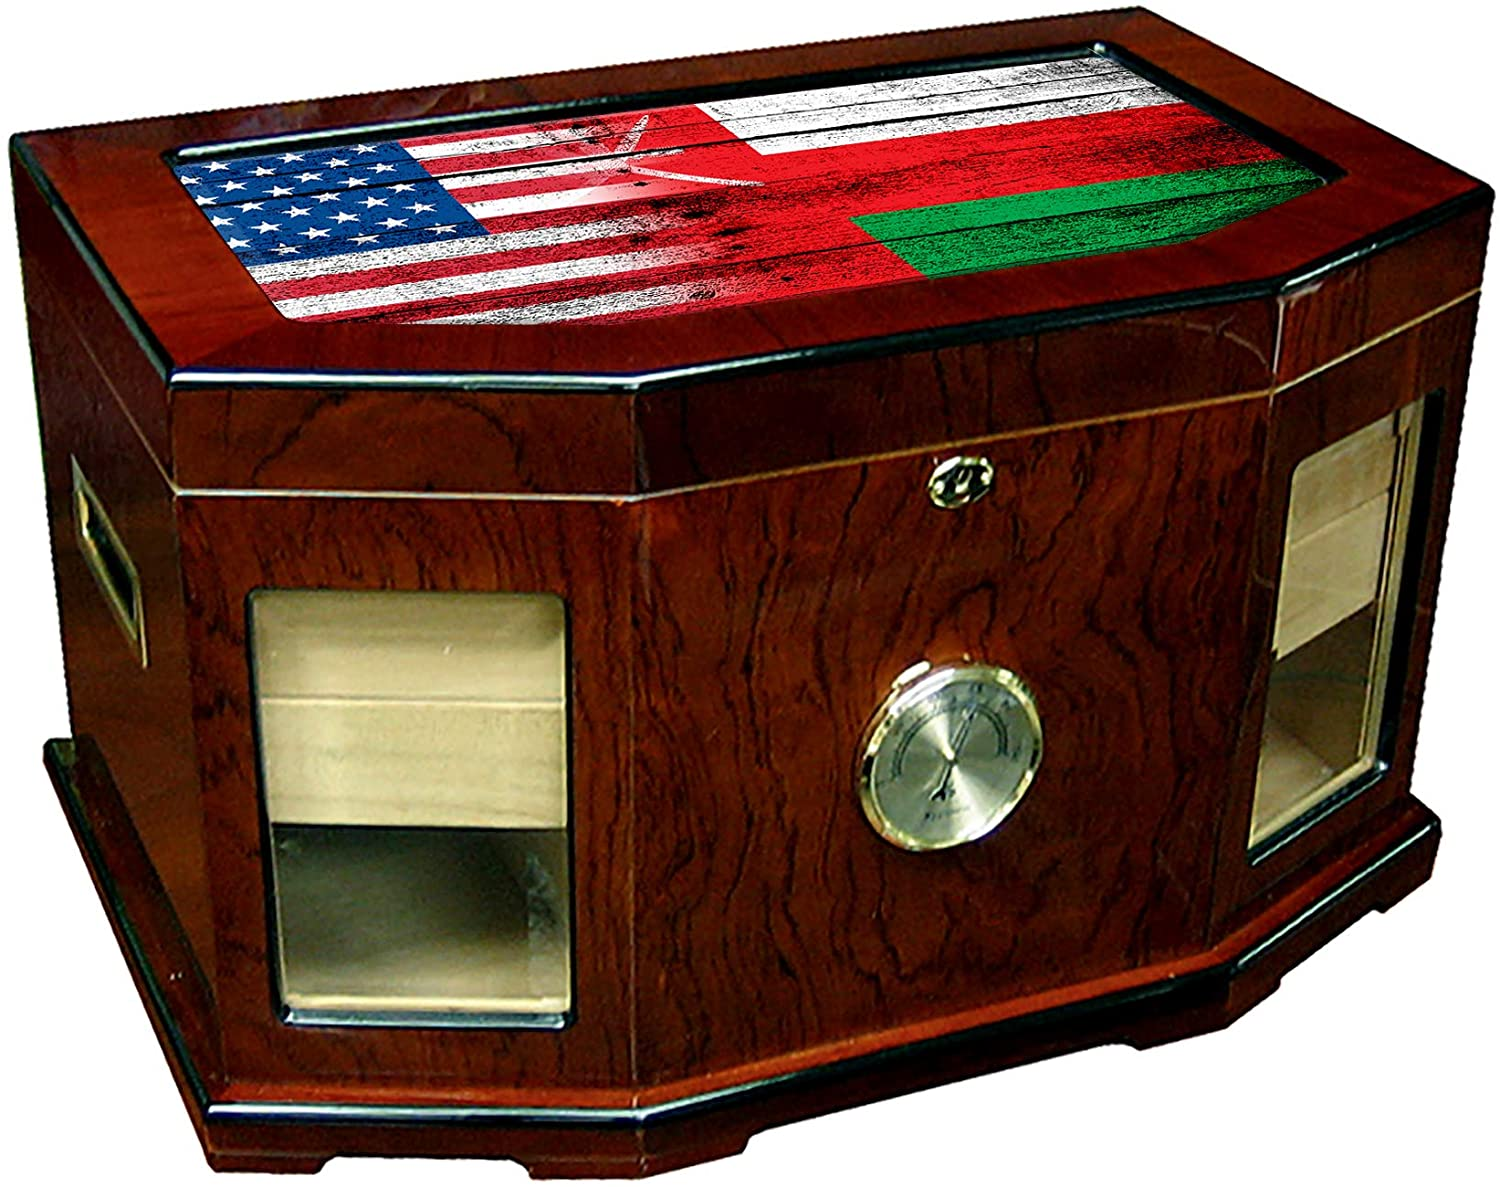 Large Premium Desktop Humidor - Glass Top - Flag of Oman (Omani) - Wood with USA Flag - 300 Cigar Capacity - Cedar Lined with Two humidifiers & Large Front Mounted Hygrometer.